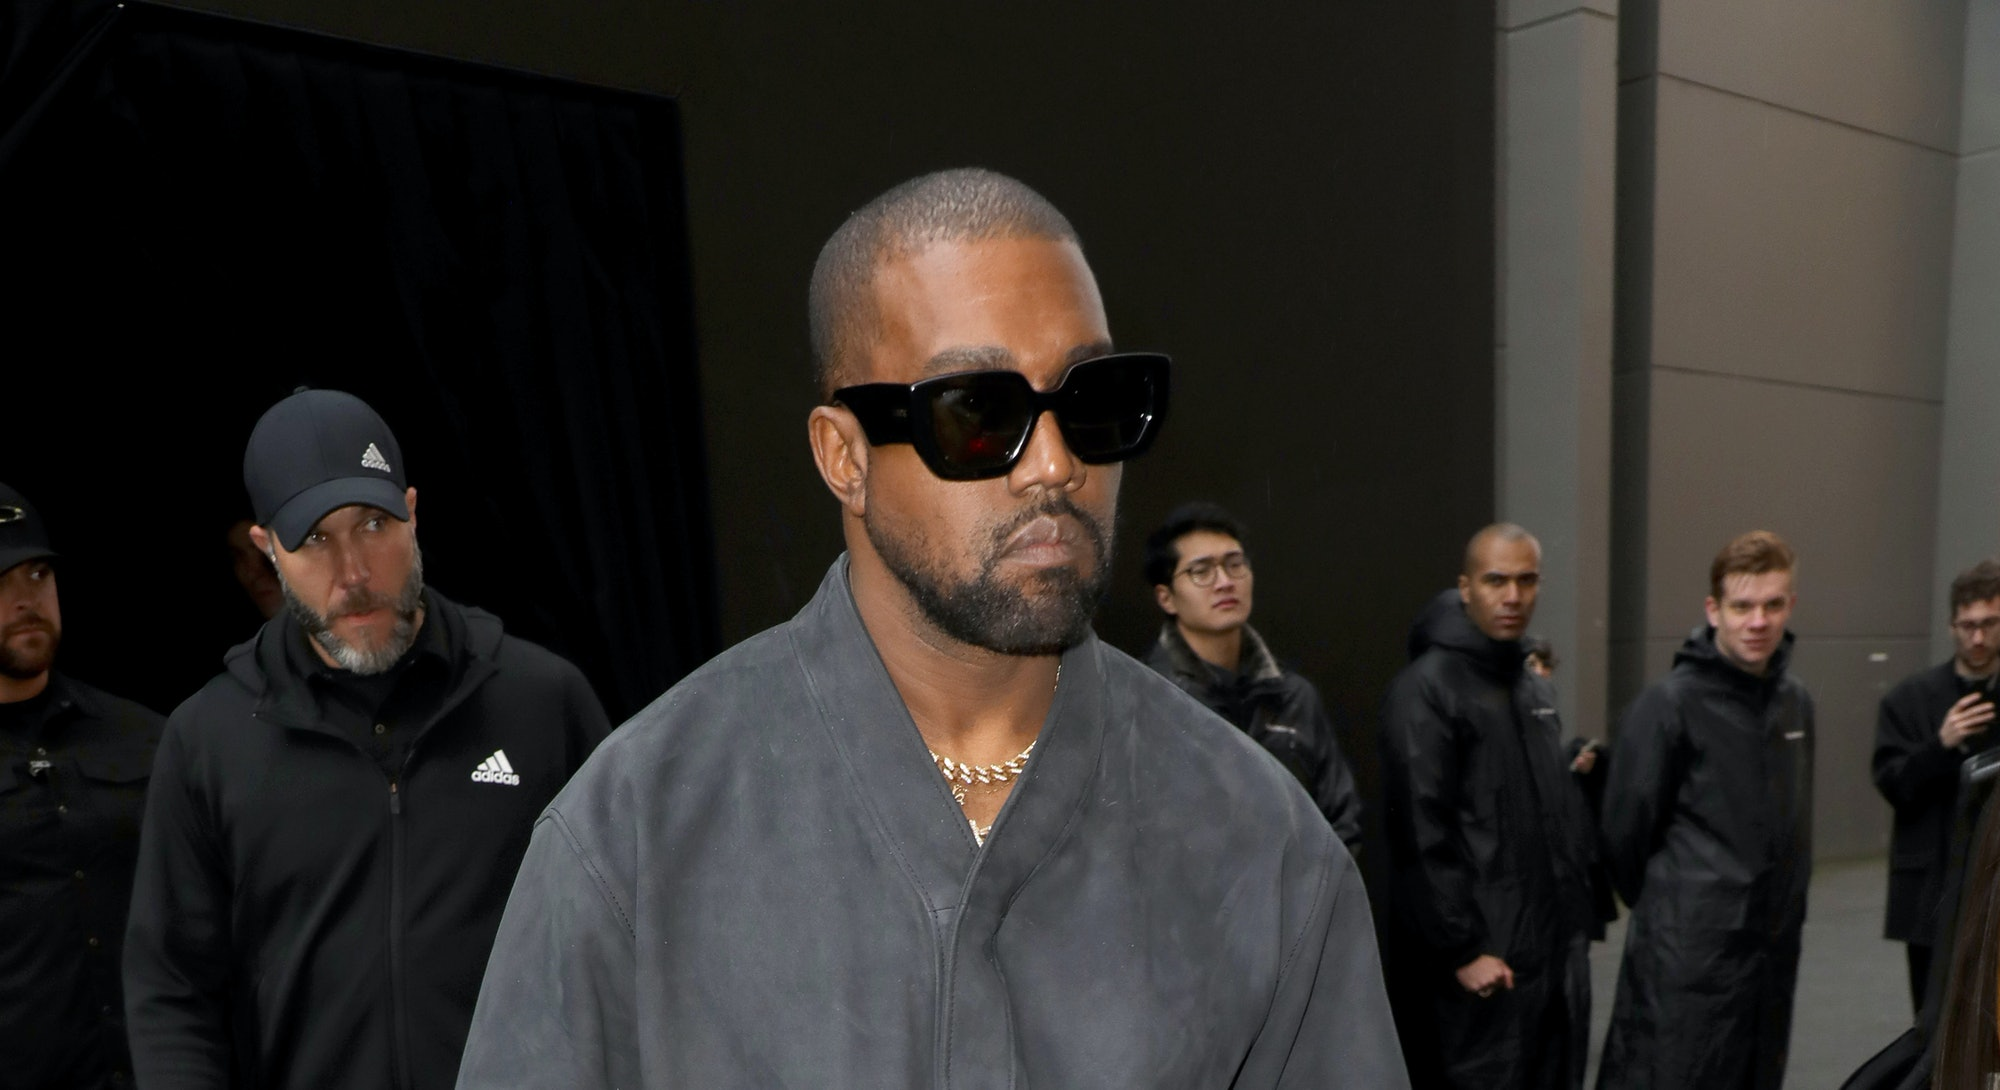 PARIS, FRANCE - MARCH 01: (EDITORIAL USE ONLY) Kanye West attends the Balenciaga show as part of the...